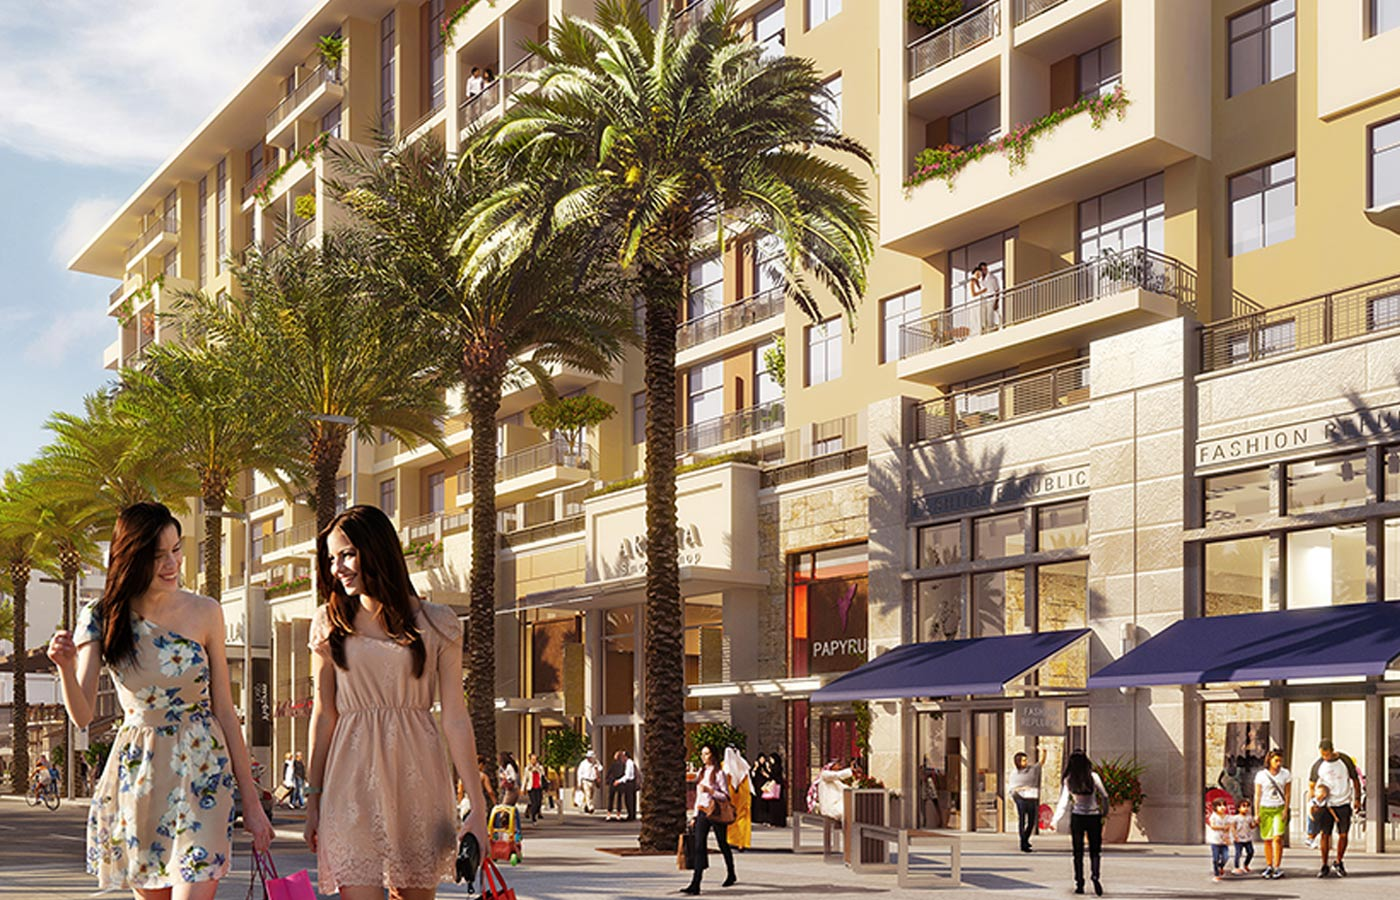 Town Square is one of the areas in Dubai with a large supply of townhouses